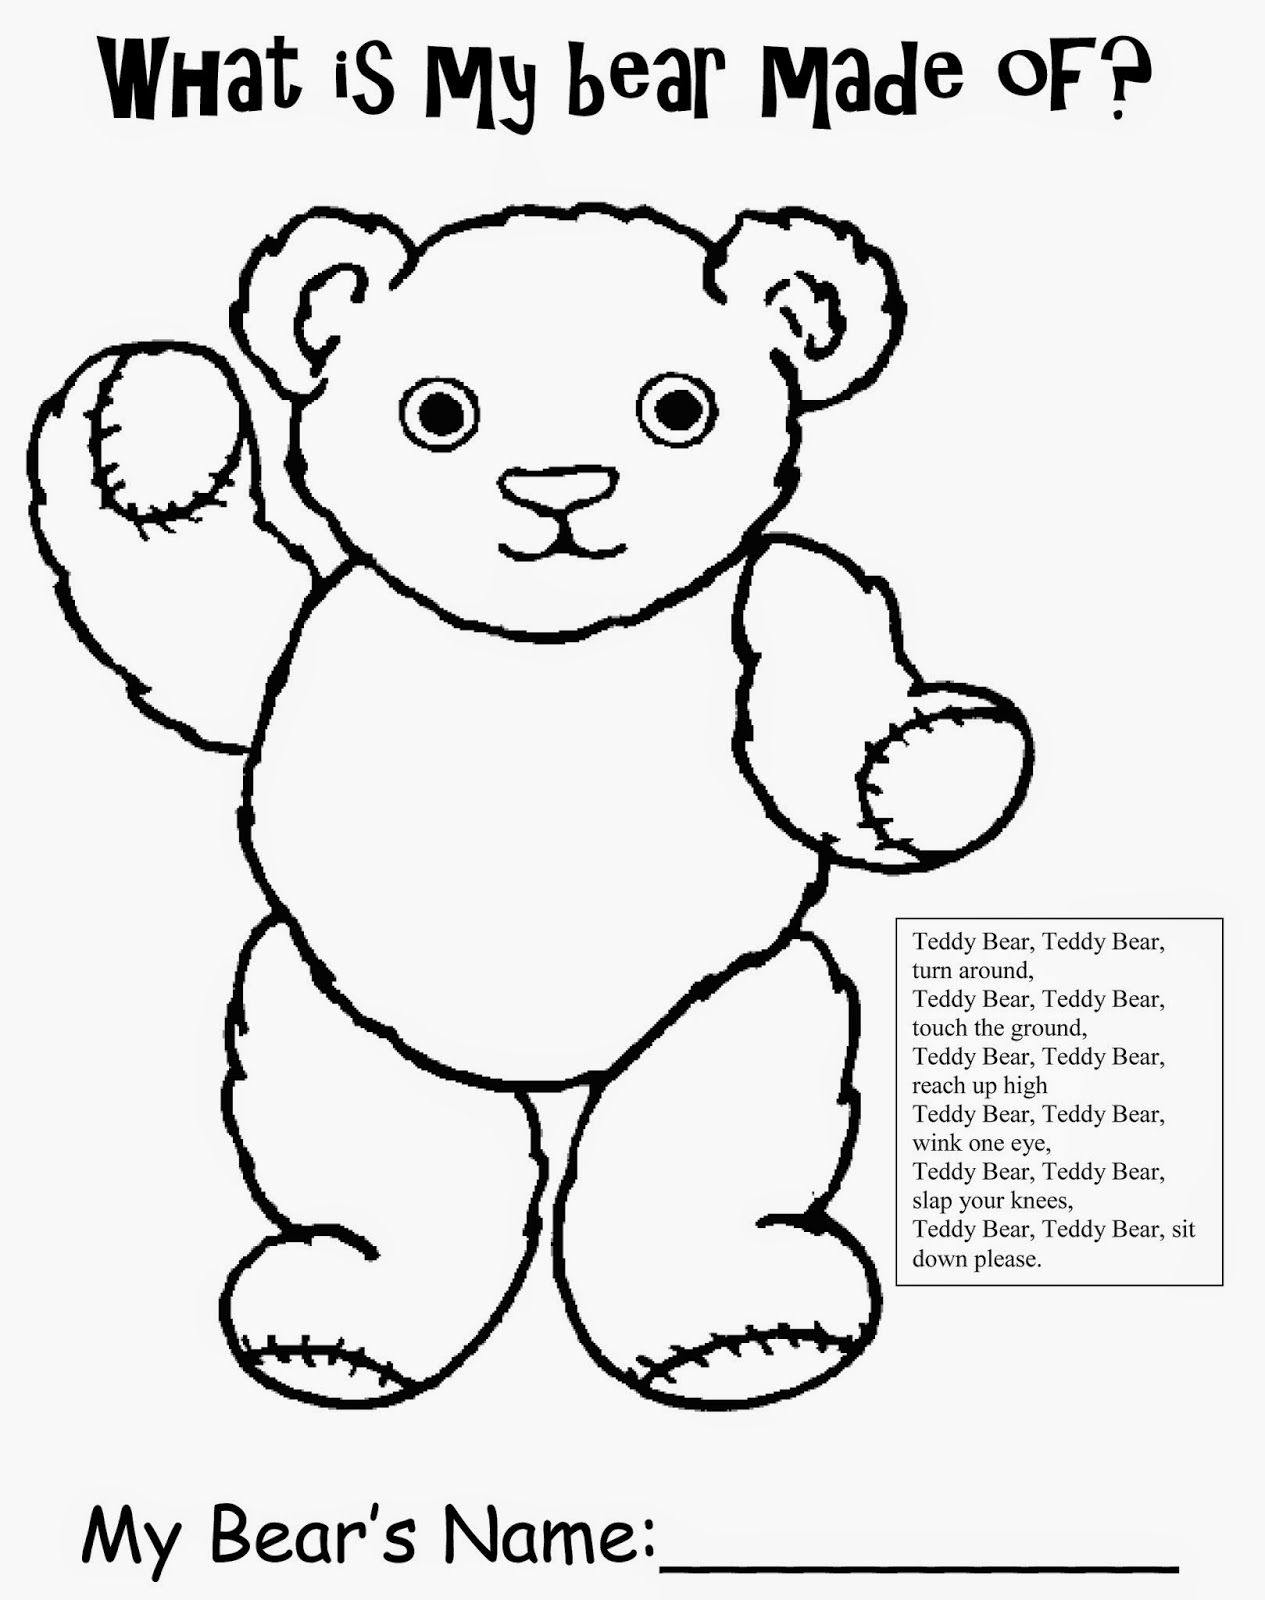 Inspiration Organization Teddy Bear Coloring Pages Bear Coloring Pages Preschool Art Projects